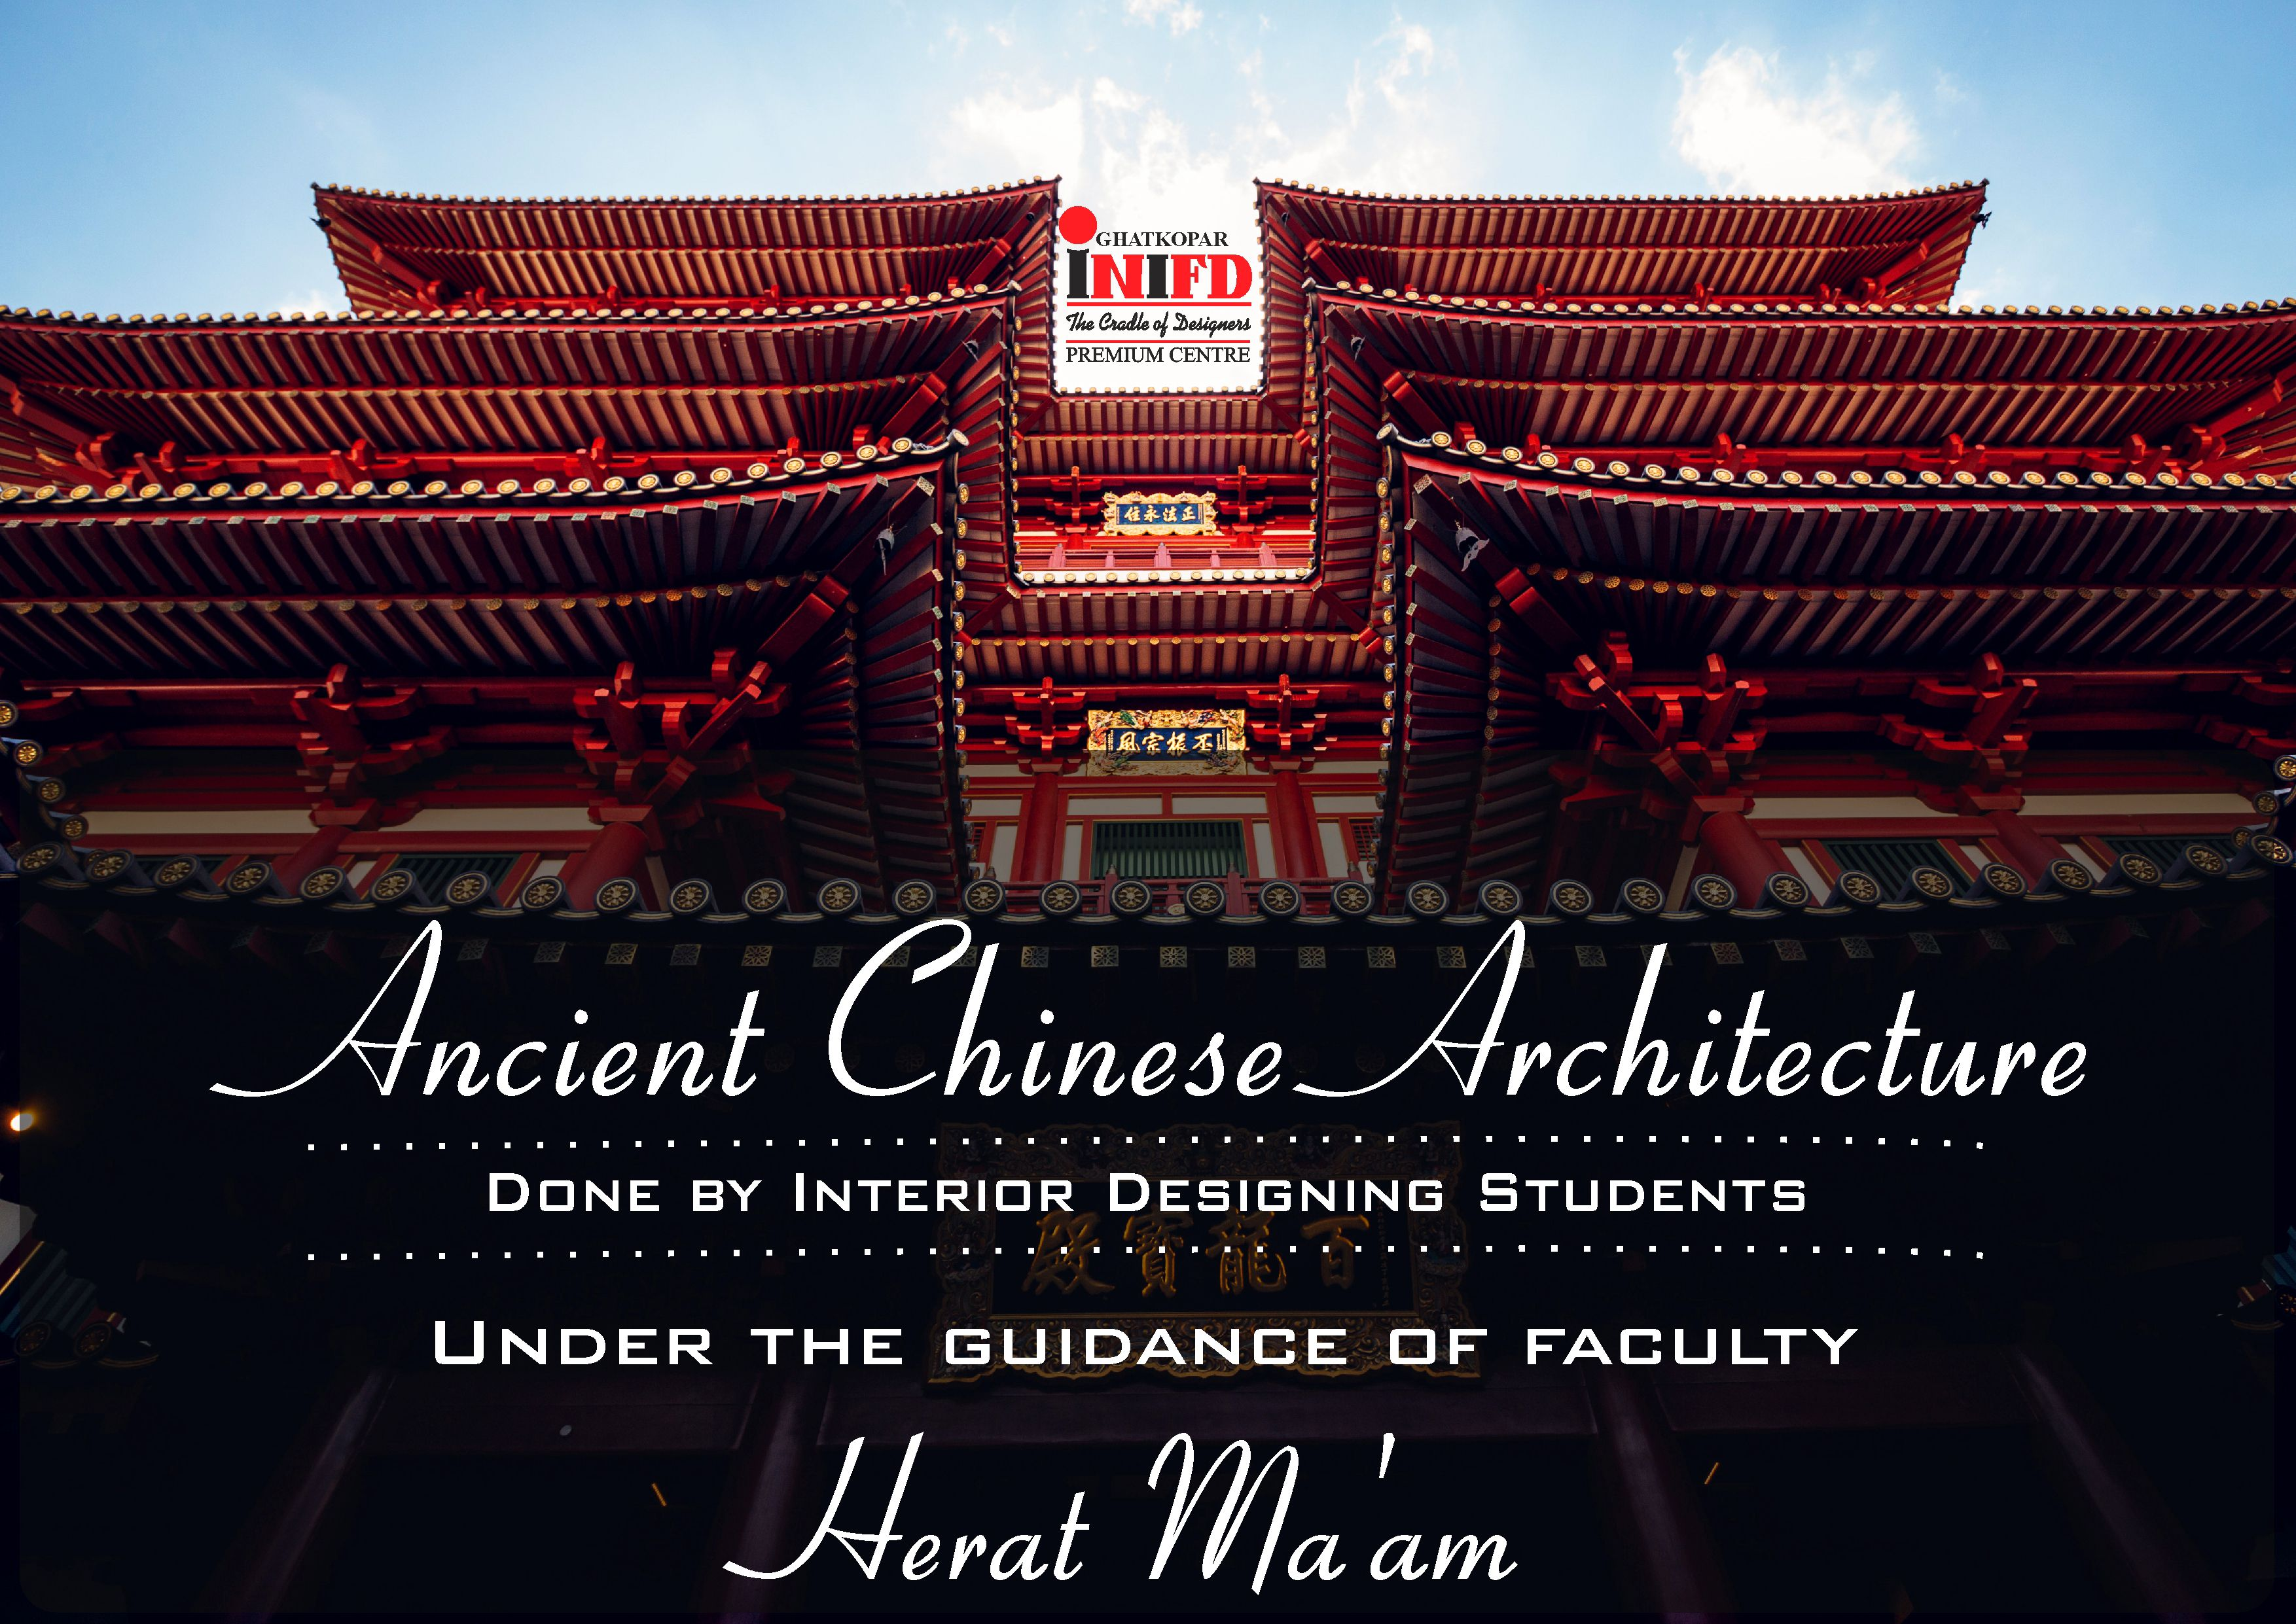 Chinese architecture demonstrates an architectural style that developed over millennia in china before spreading out also rh pinterest